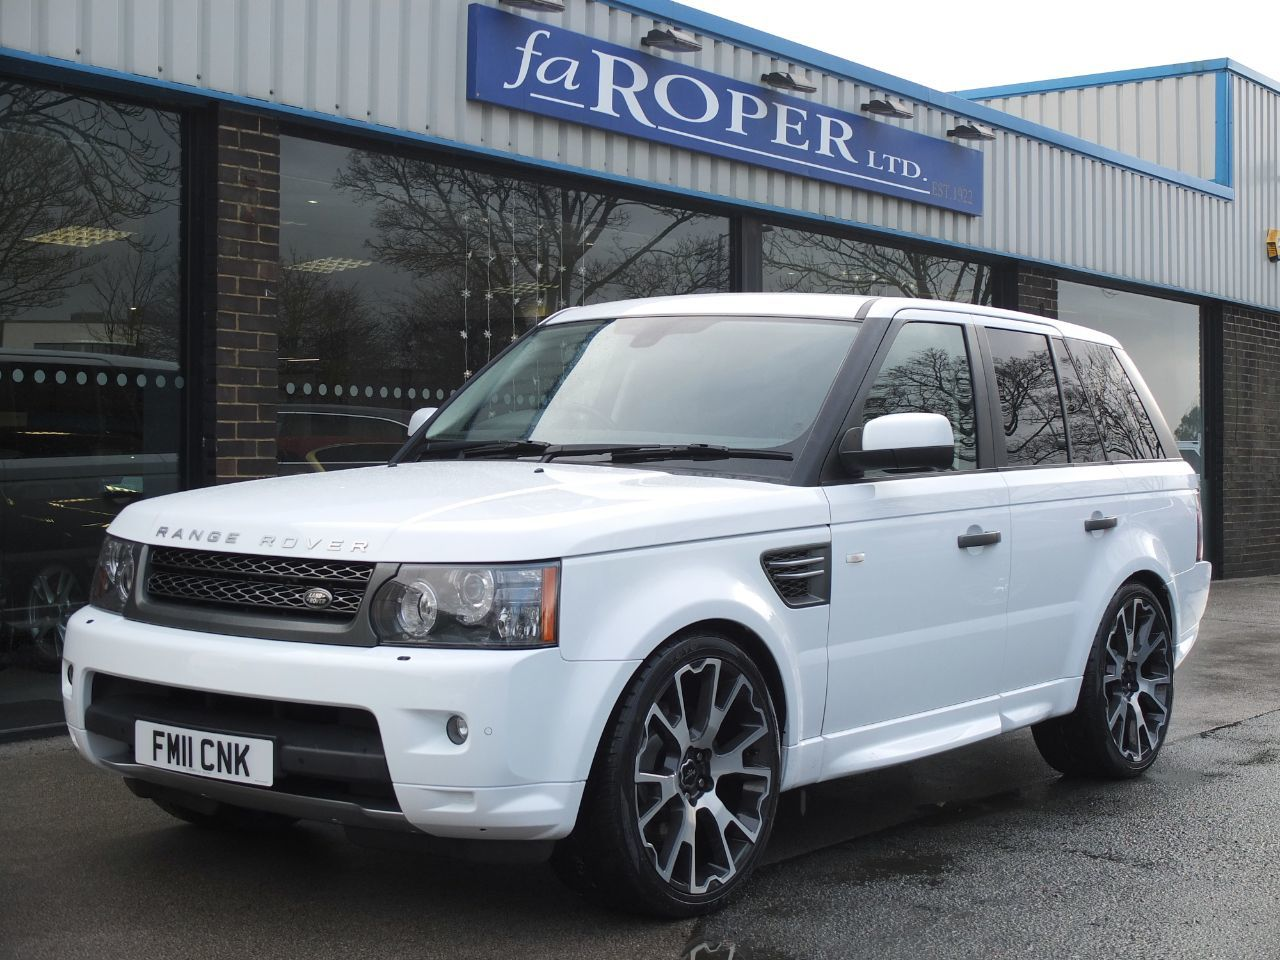 Land Rover Range Rover Sport 3.0 TDV6 SE 5dr CommandShift Estate Diesel Fuji WhiteLand Rover Range Rover Sport 3.0 TDV6 SE 5dr CommandShift Estate Diesel Fuji White at fa Roper Ltd Bradford